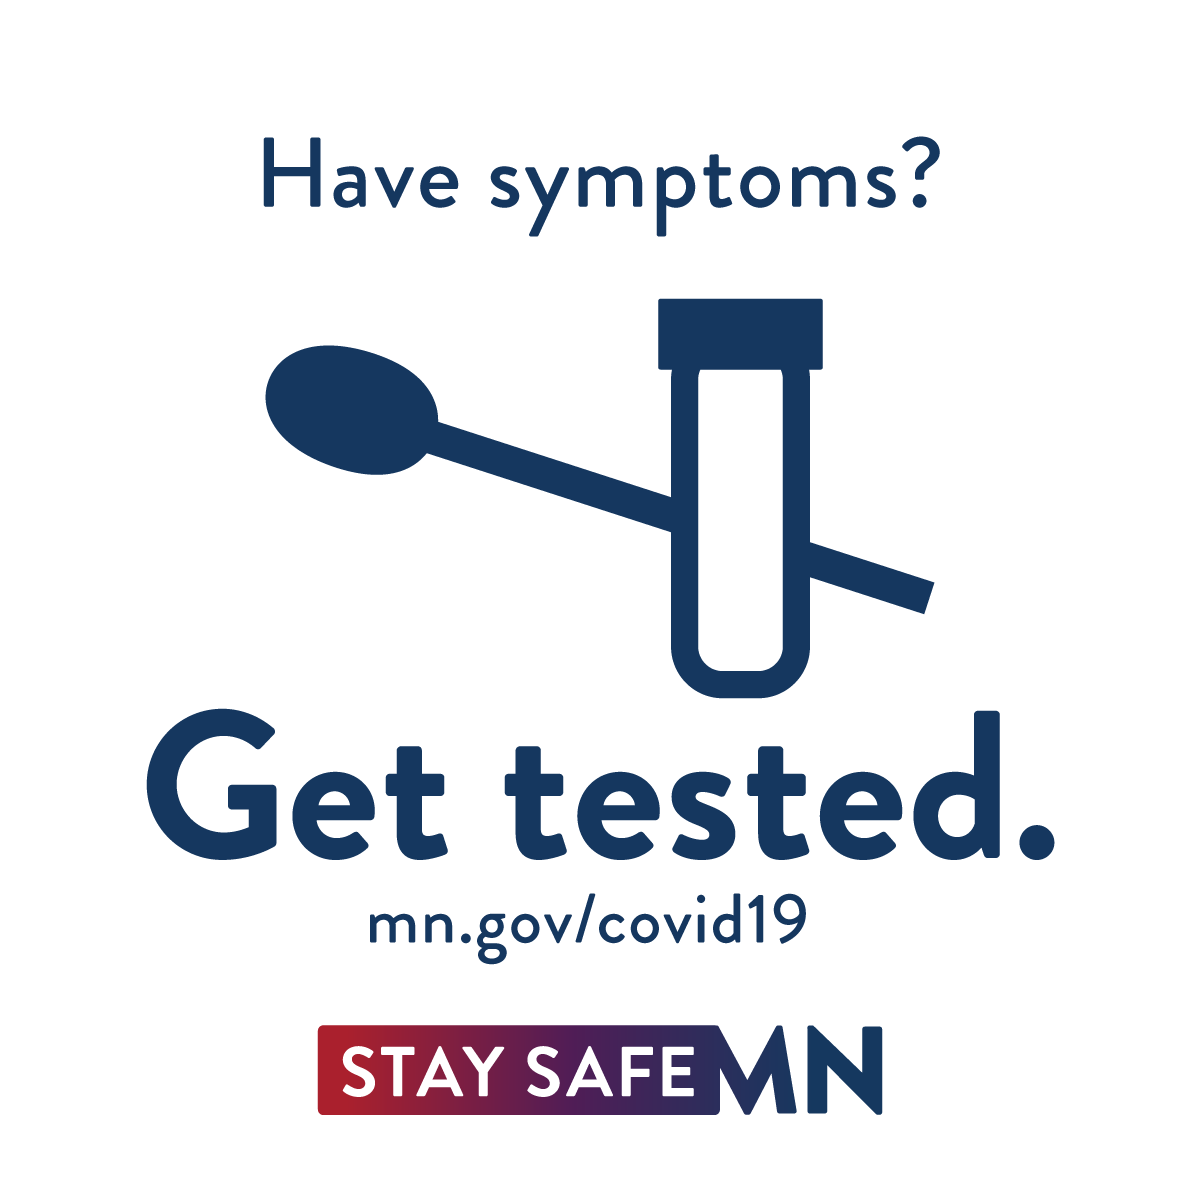 Have symptoms? Get tested.